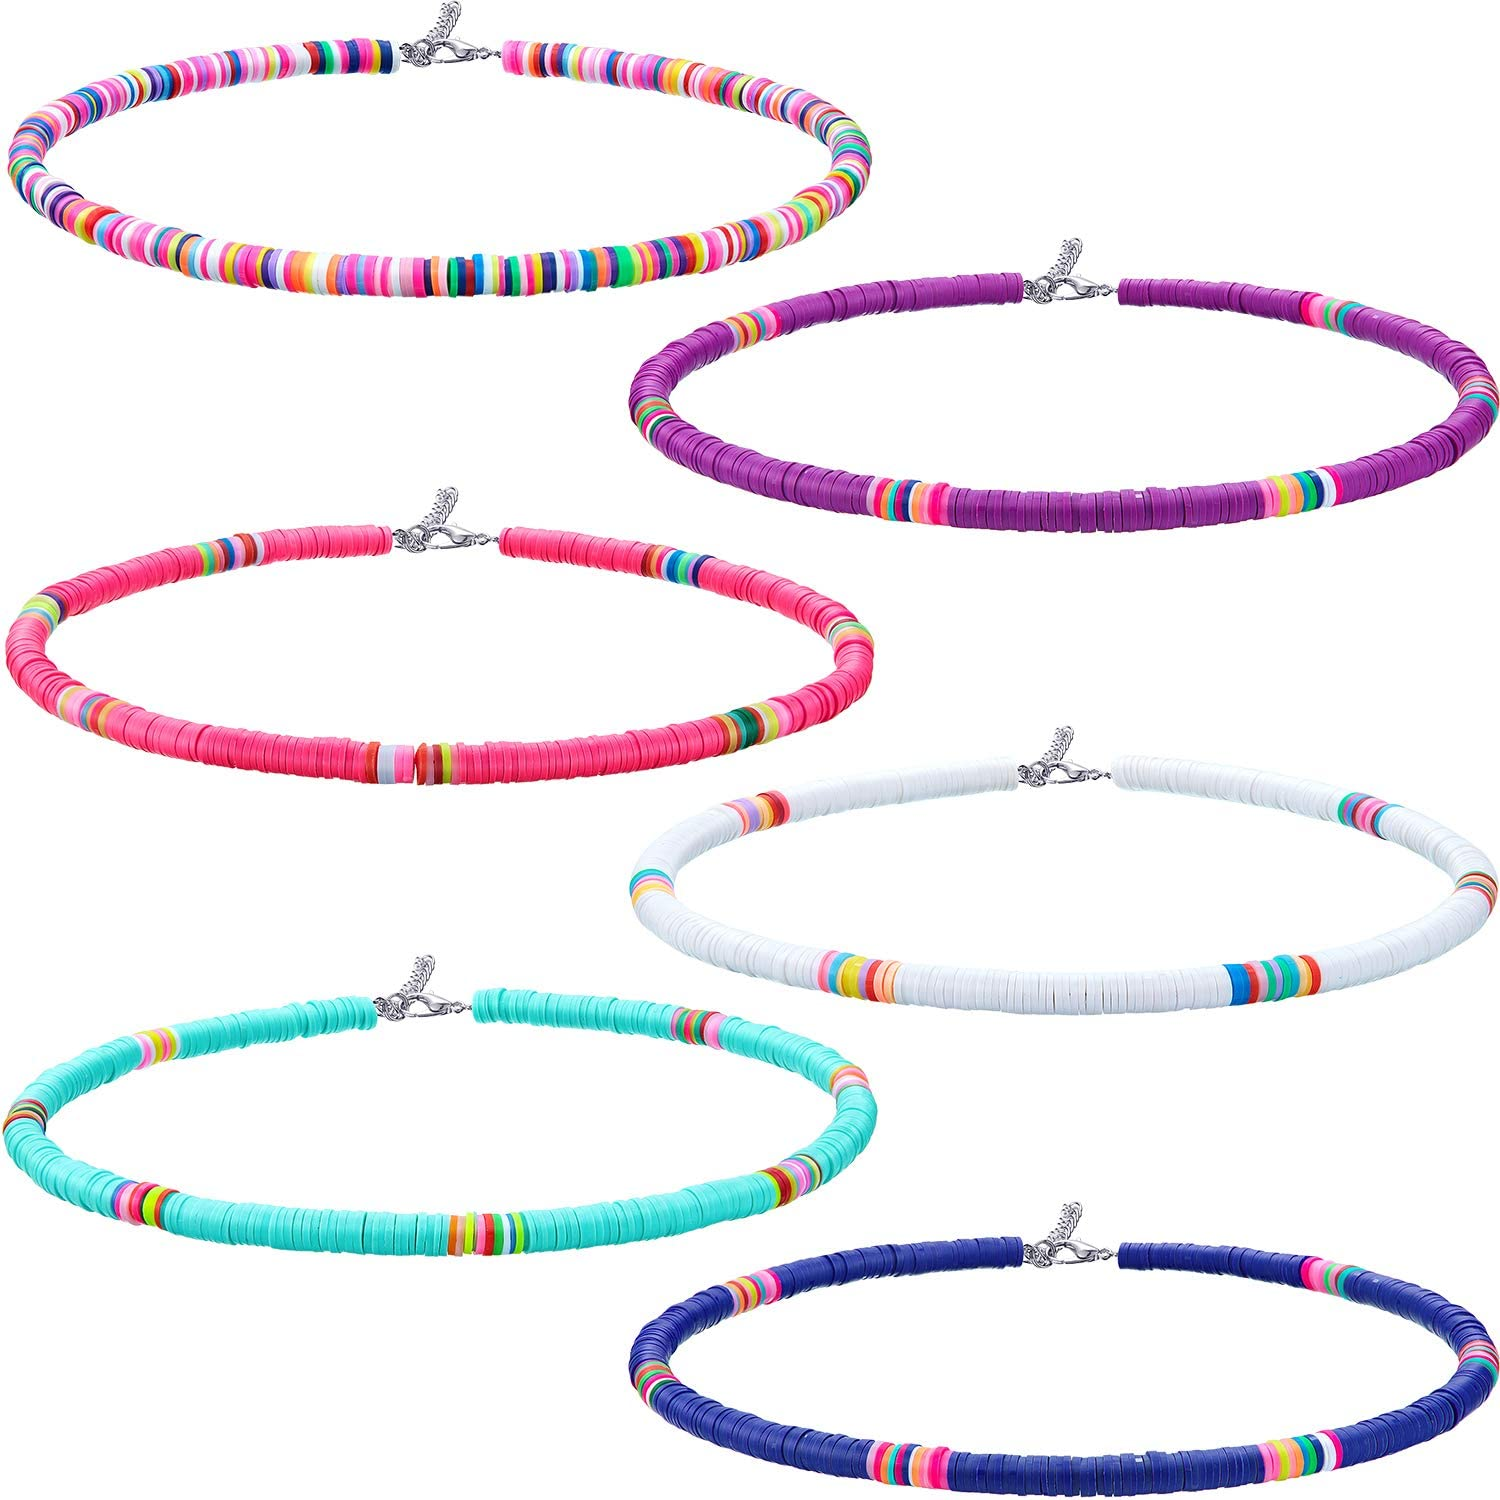 6 Pieces Seed Bead Choker Necklace Bohemian Surfer Boho Beads Choker Necklace Colorful Heishi Vinyl Necklace Chain Beach Jewelry for Women Girls